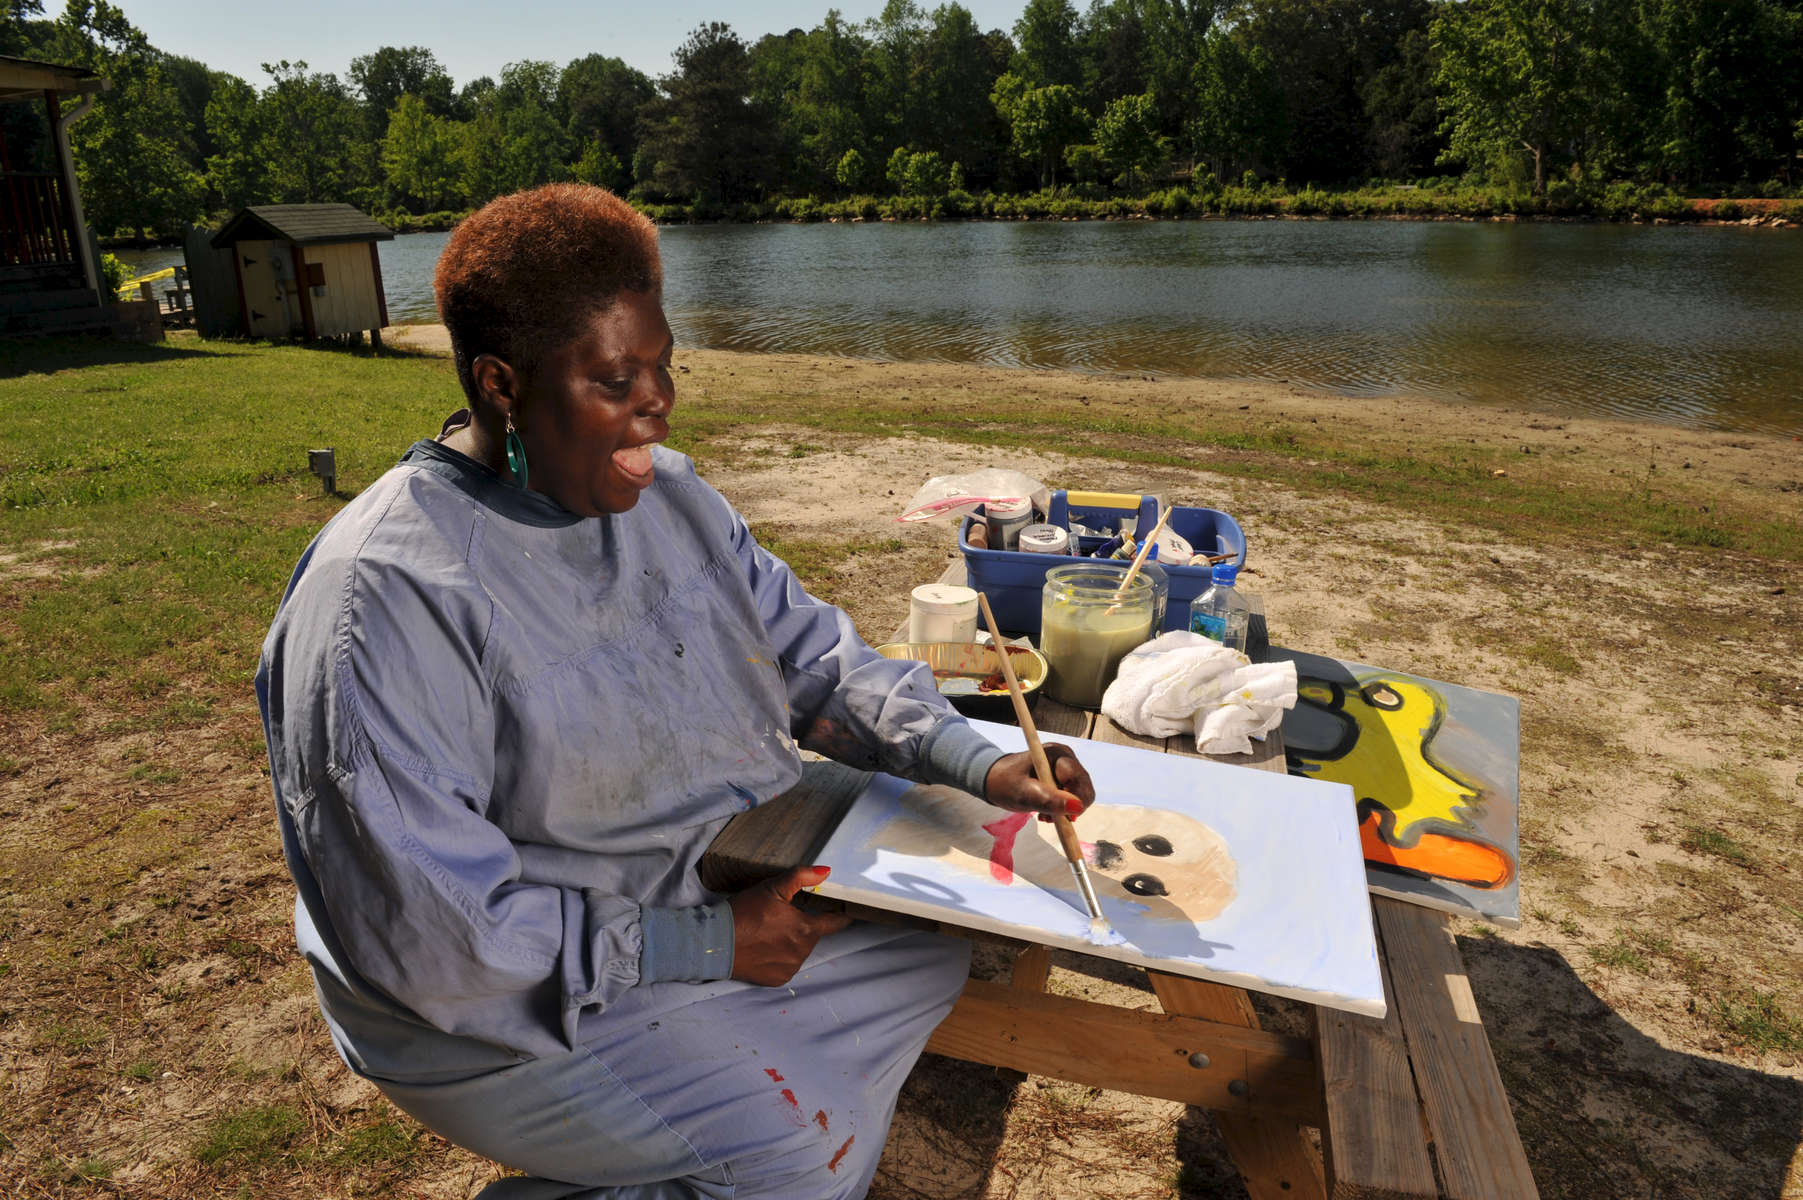 "Decatur, GA – Ten years after the U.S. Supreme Court's landmark ""Olmstead"" decision made it possible for mentally disabled persons to live within their communities rather than state mental hospitals, 41-year-old LOIS CURTIS is all smiles, loving her life beyond locked doors and high fences.A self-taught artist, Curtis spent much of her life in various mental institutions. Following denial of numerous requests to live in her community, she initiated a lawsuit against the state of Georgia. In July, 1999 the U.S. Supreme Court ruled that 'unnecessary institutionalization' amounted to segregation and violated individuals' civil rights. Her case established a national mandate to free tens of thousands of people with disabilities from institutionalization. Today, Ms. Curtis receives community-based support and enjoys life outside the confines of institutional living. Her artistic talent and passion for creativity have motivated her to make art and advocacy her life's work. Her artwork, typically done in pastels and acrylics, are heartfelt, bold expressions of how deeply she values personal relationships.  They are mainly portraits, capturing intense emotions with simple lines and bold colors. ""I feel good about myself. Sometimes I put my mind on the earth and go to the future where my art pictures are on the wall. People would love to see my pretty art pictures because they will take them to heaven and hug them forever,"" says Ms. Curtis. Her supporters have arranged for dozens of art shows in the Atlanta area, and she is now an invited speaker to conferences nationwide. Pictured: Lois paints wildlife at Pine Lake, an artist community near Atlanta where Lois dreams of living."